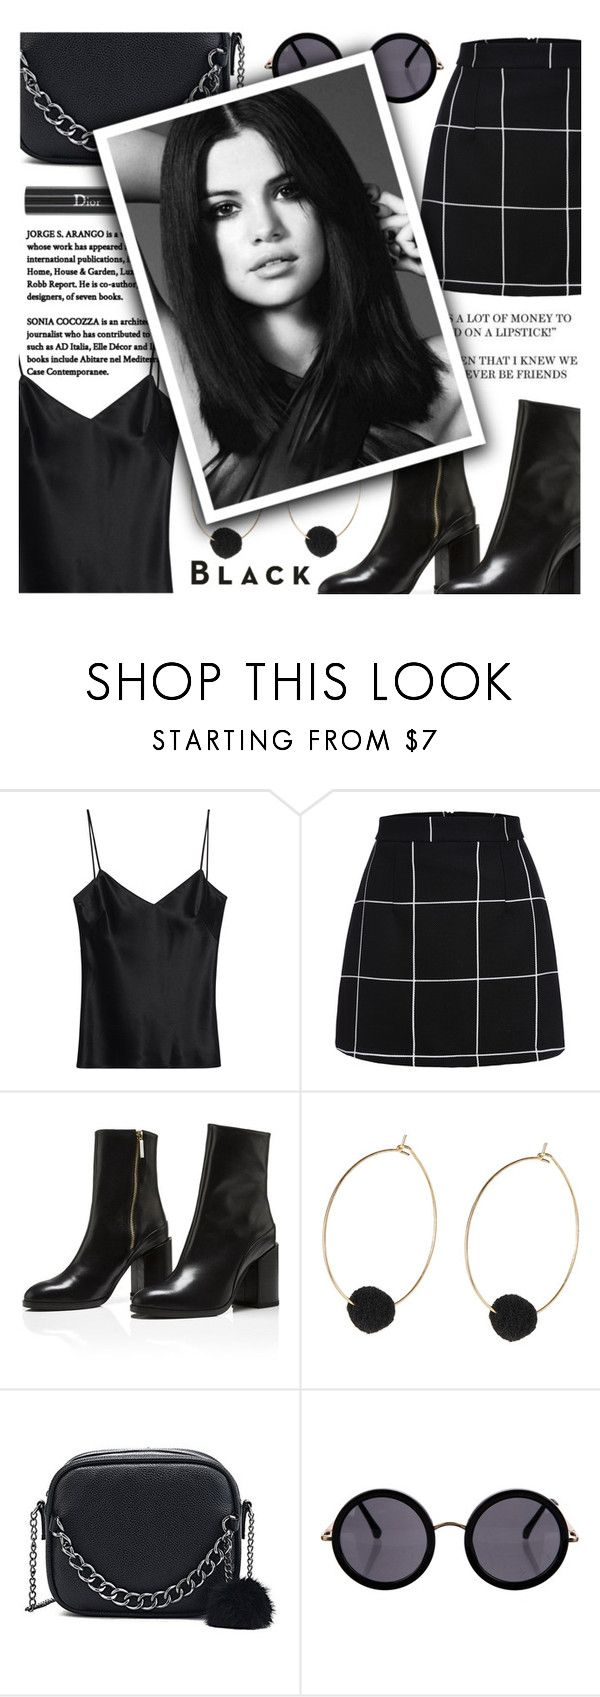 """All Black Everything♣"" by narminabasoffa ❤ liked on Polyvore featuring Galvan, Vision, Christian Dior, The Row and allblackoutfit"